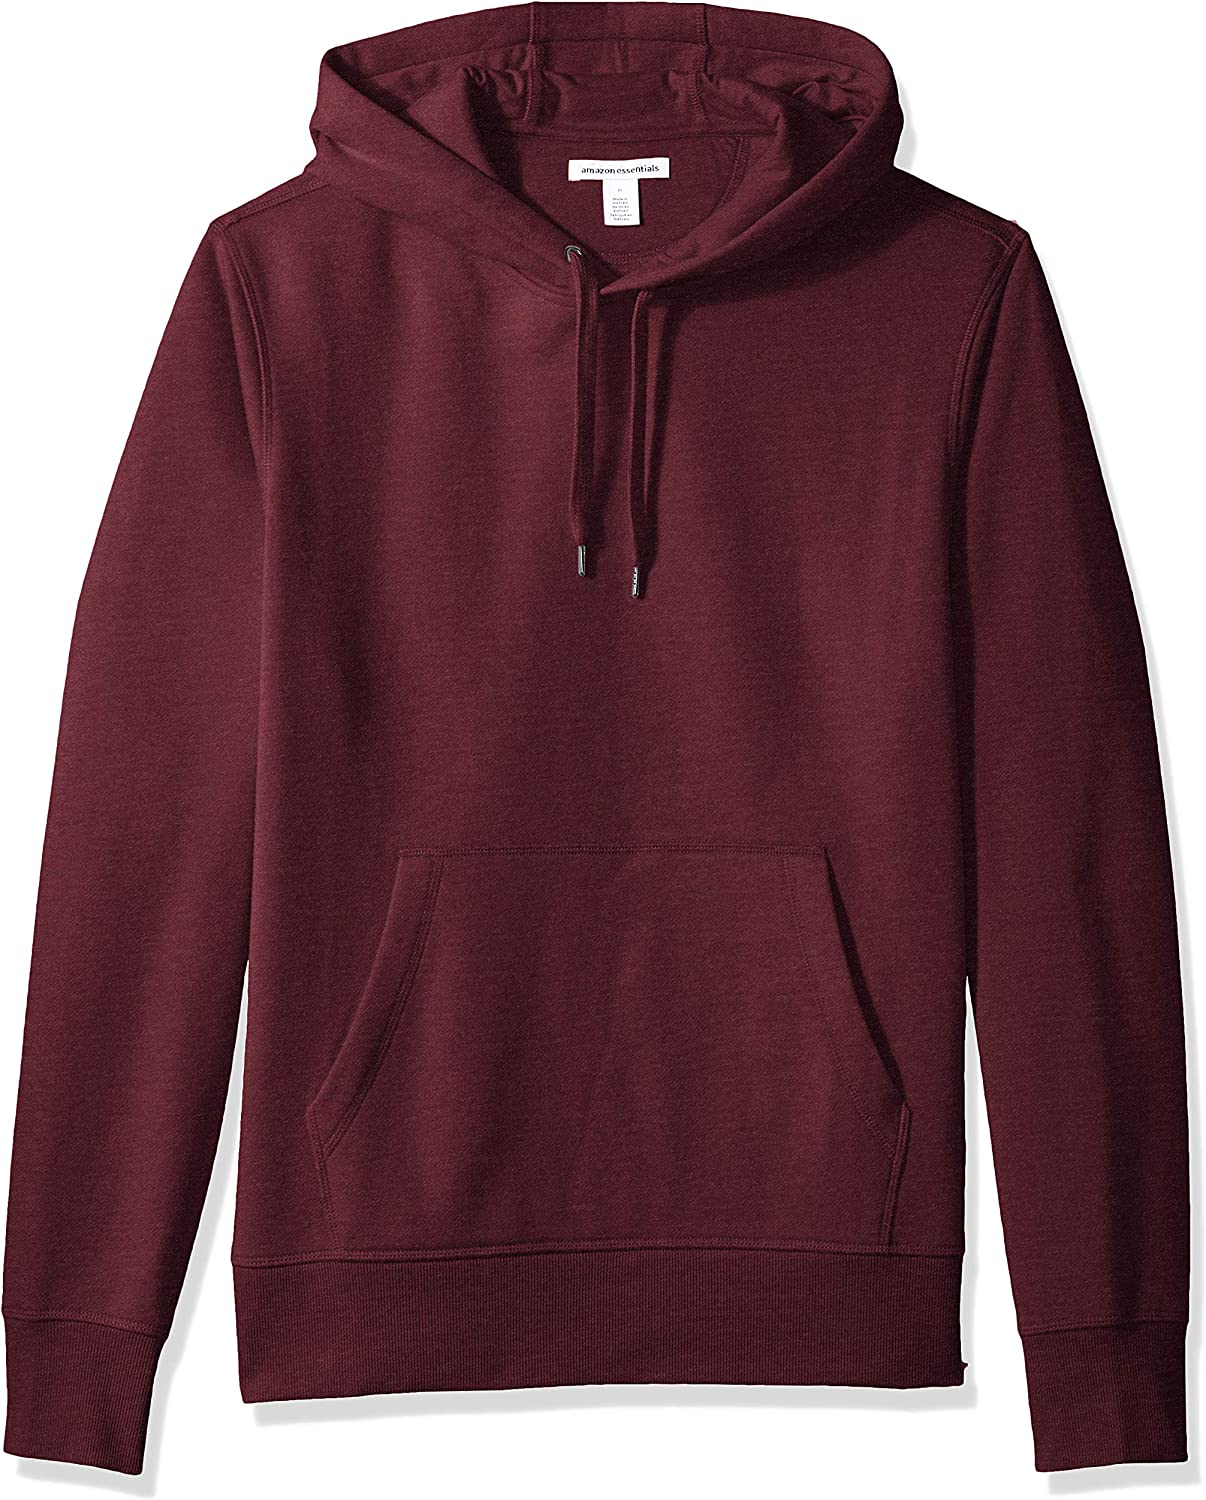 Essentials Men's Standard Hooded Fleece Sweatshirt: Clothing